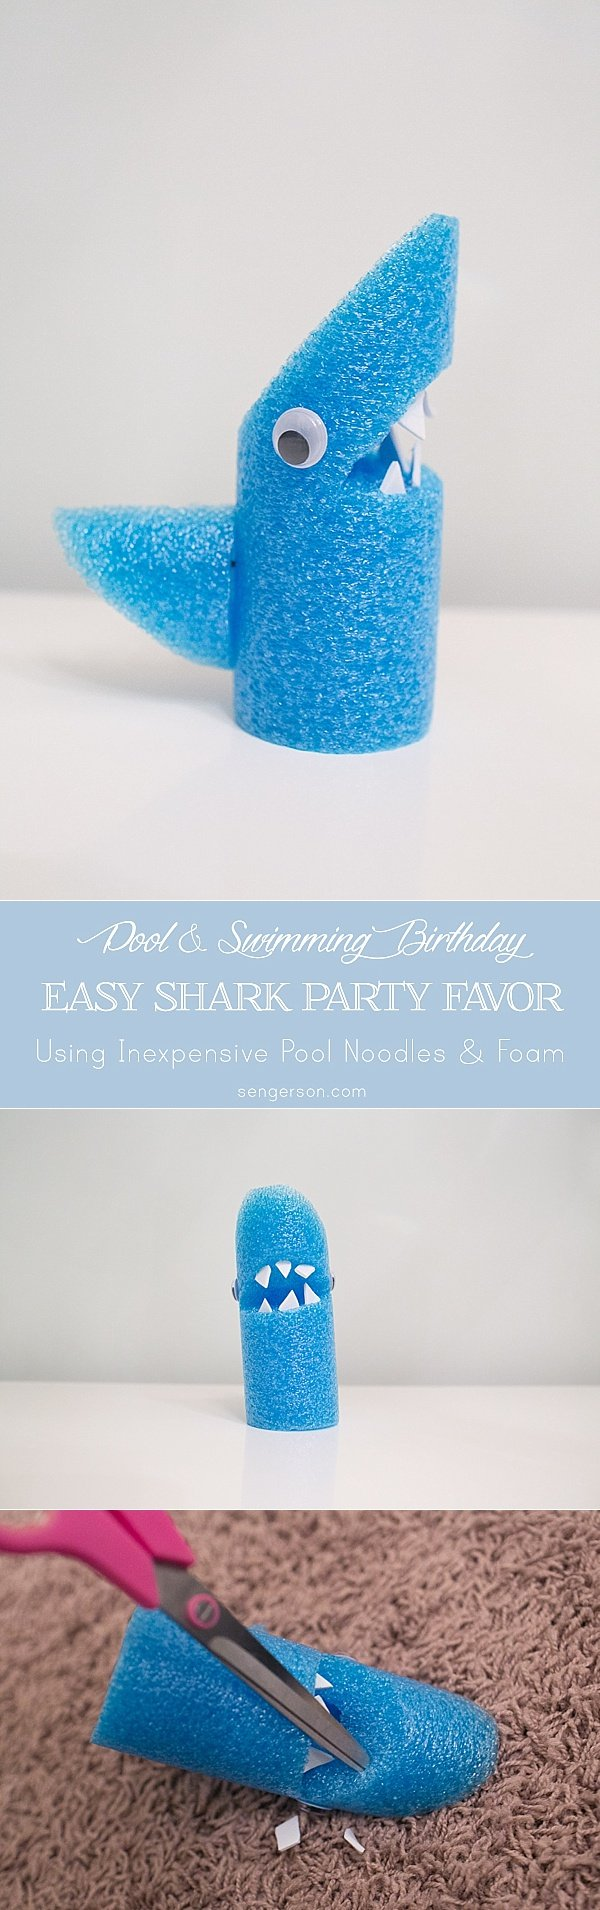 shark party favor idea_0002